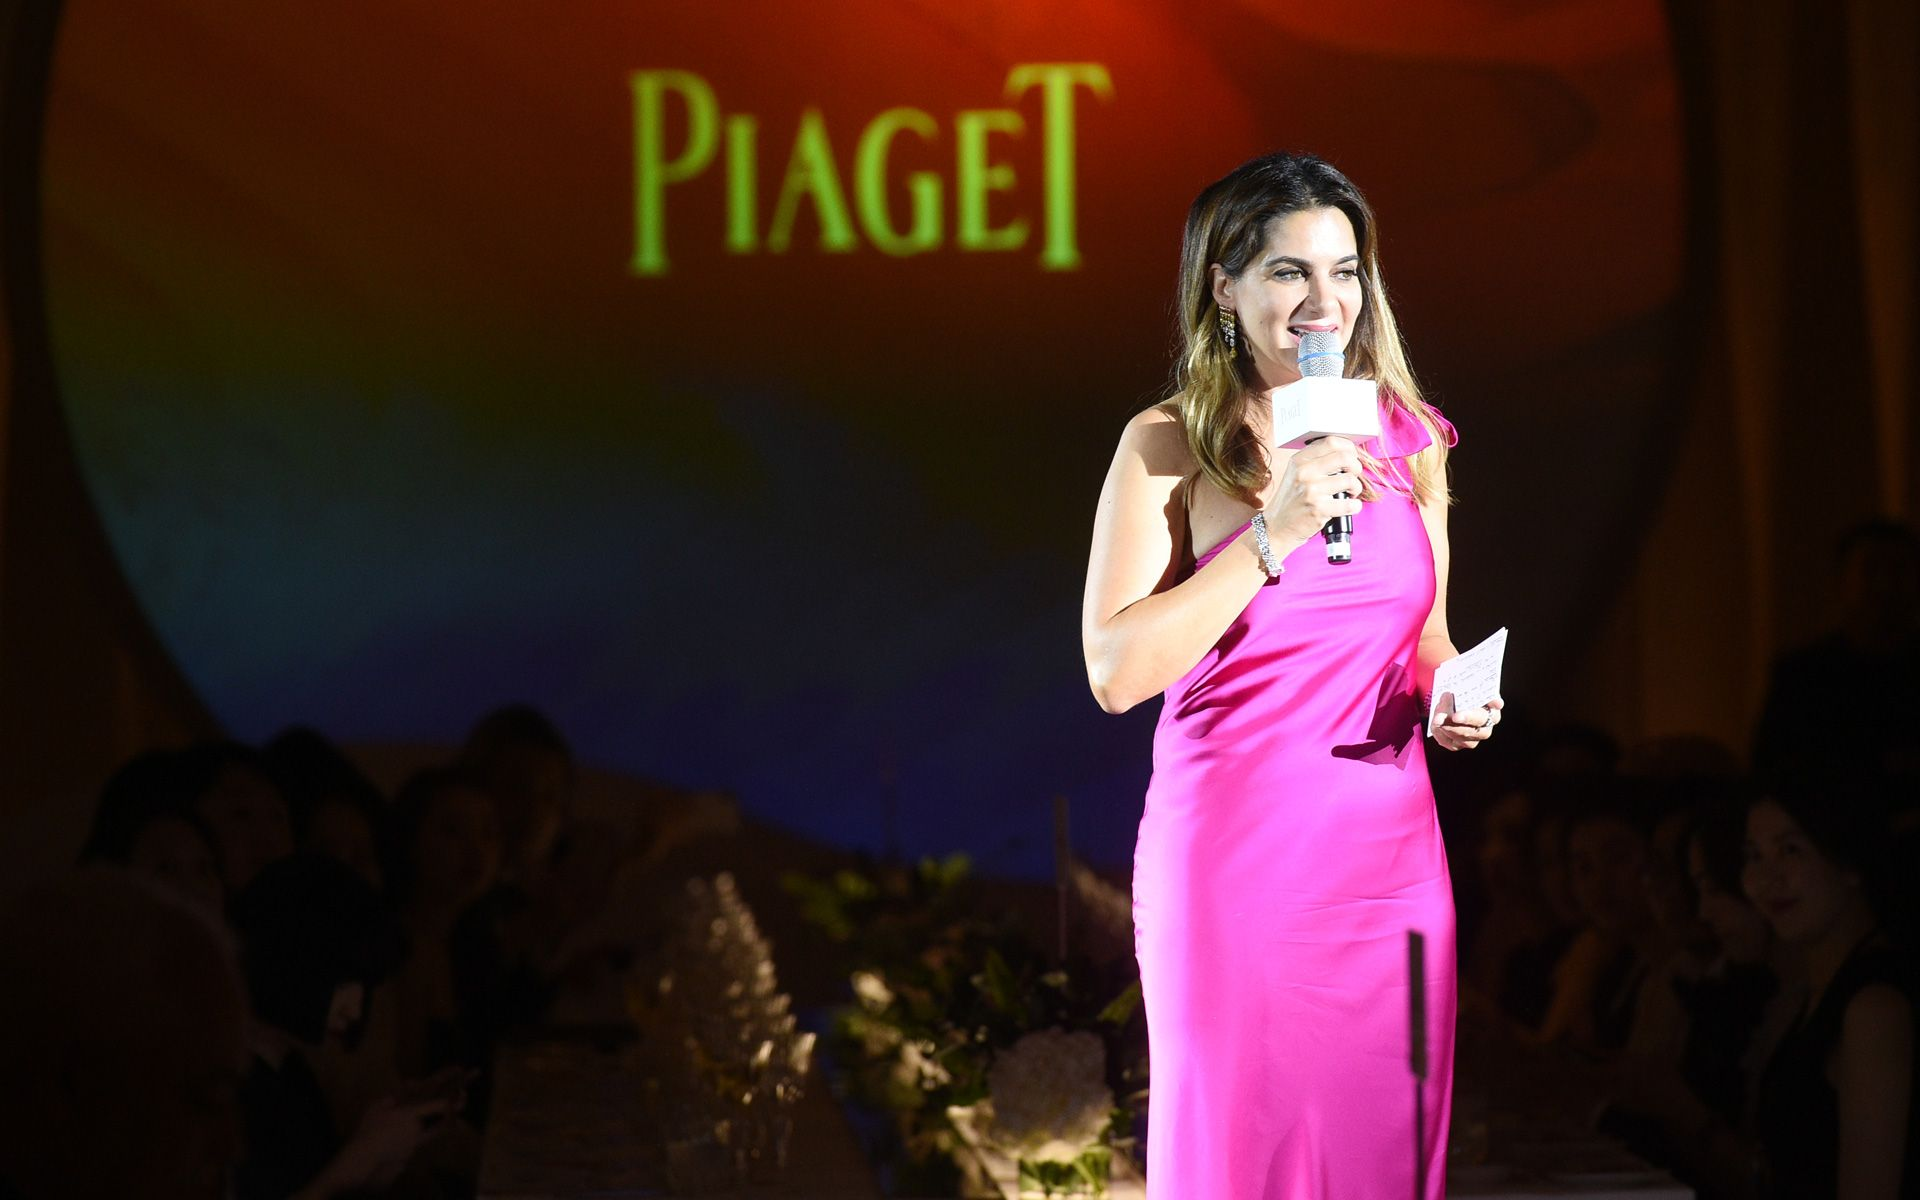 Piaget's CEO Chabi Nouri On Leadership, Success—And Her Best Career Advice For Women